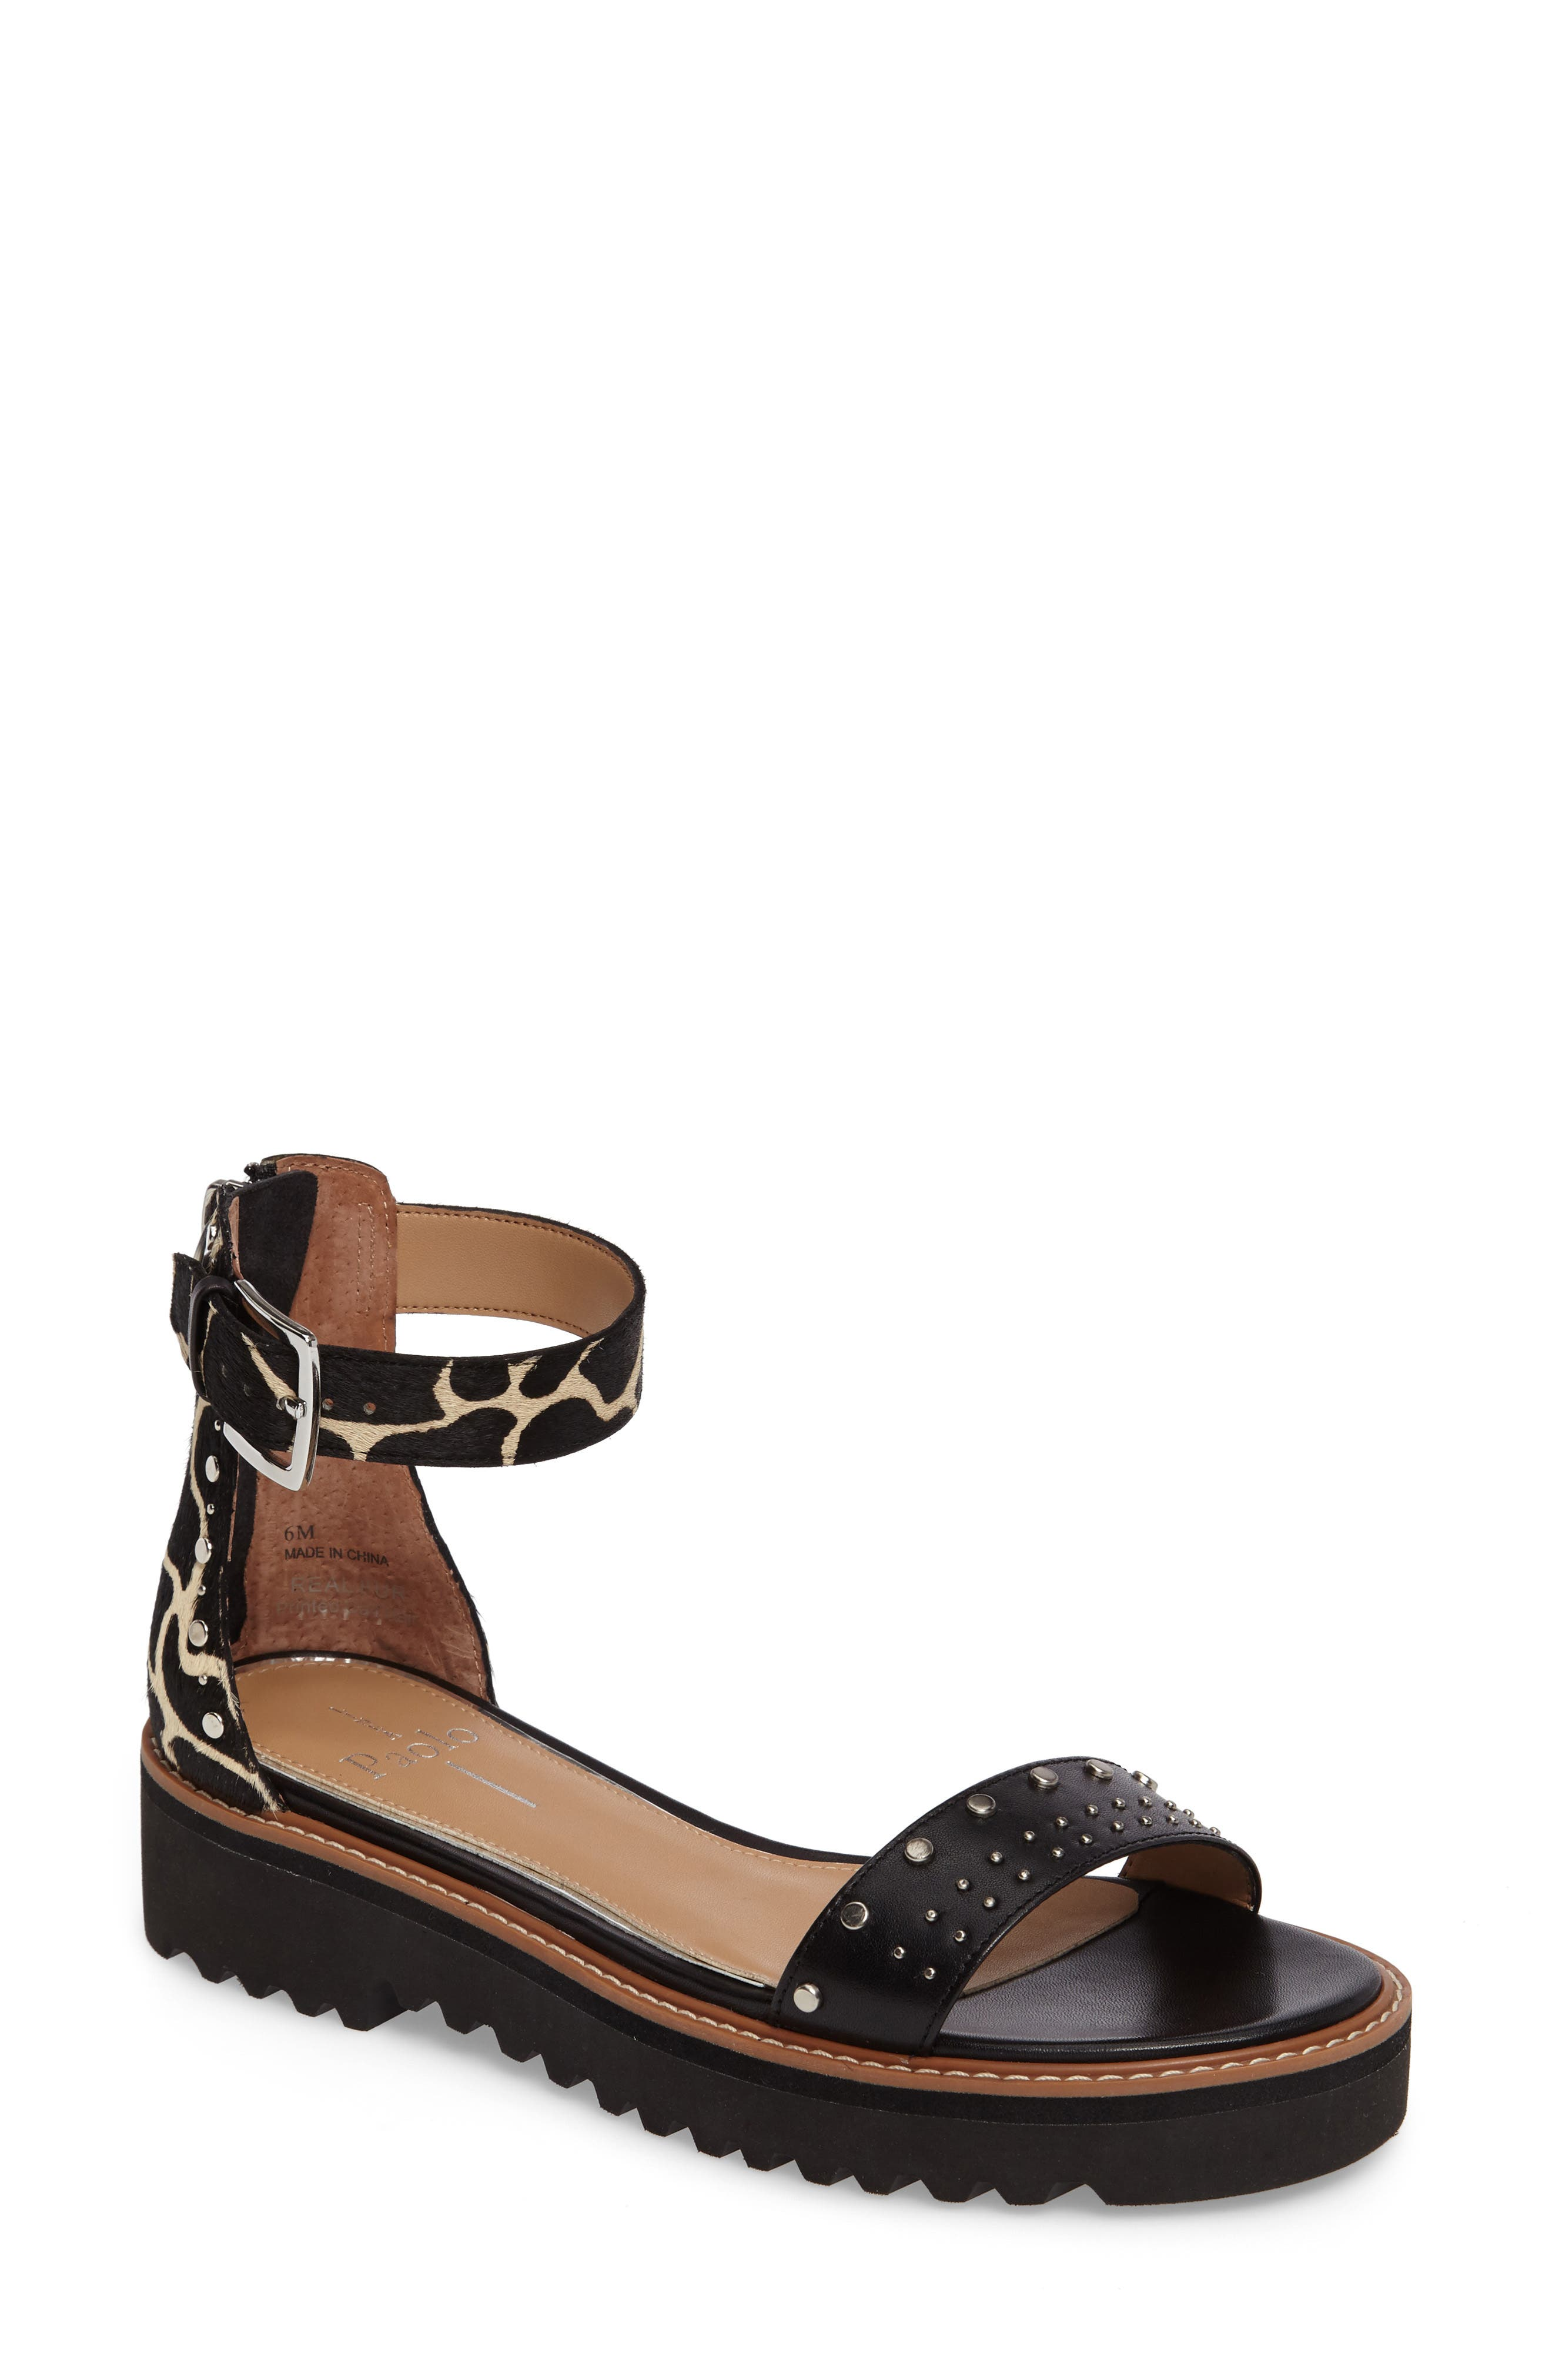 Linea Paolo Ricky Genuine Calf Hair Ankle Strap Sandal (Women)